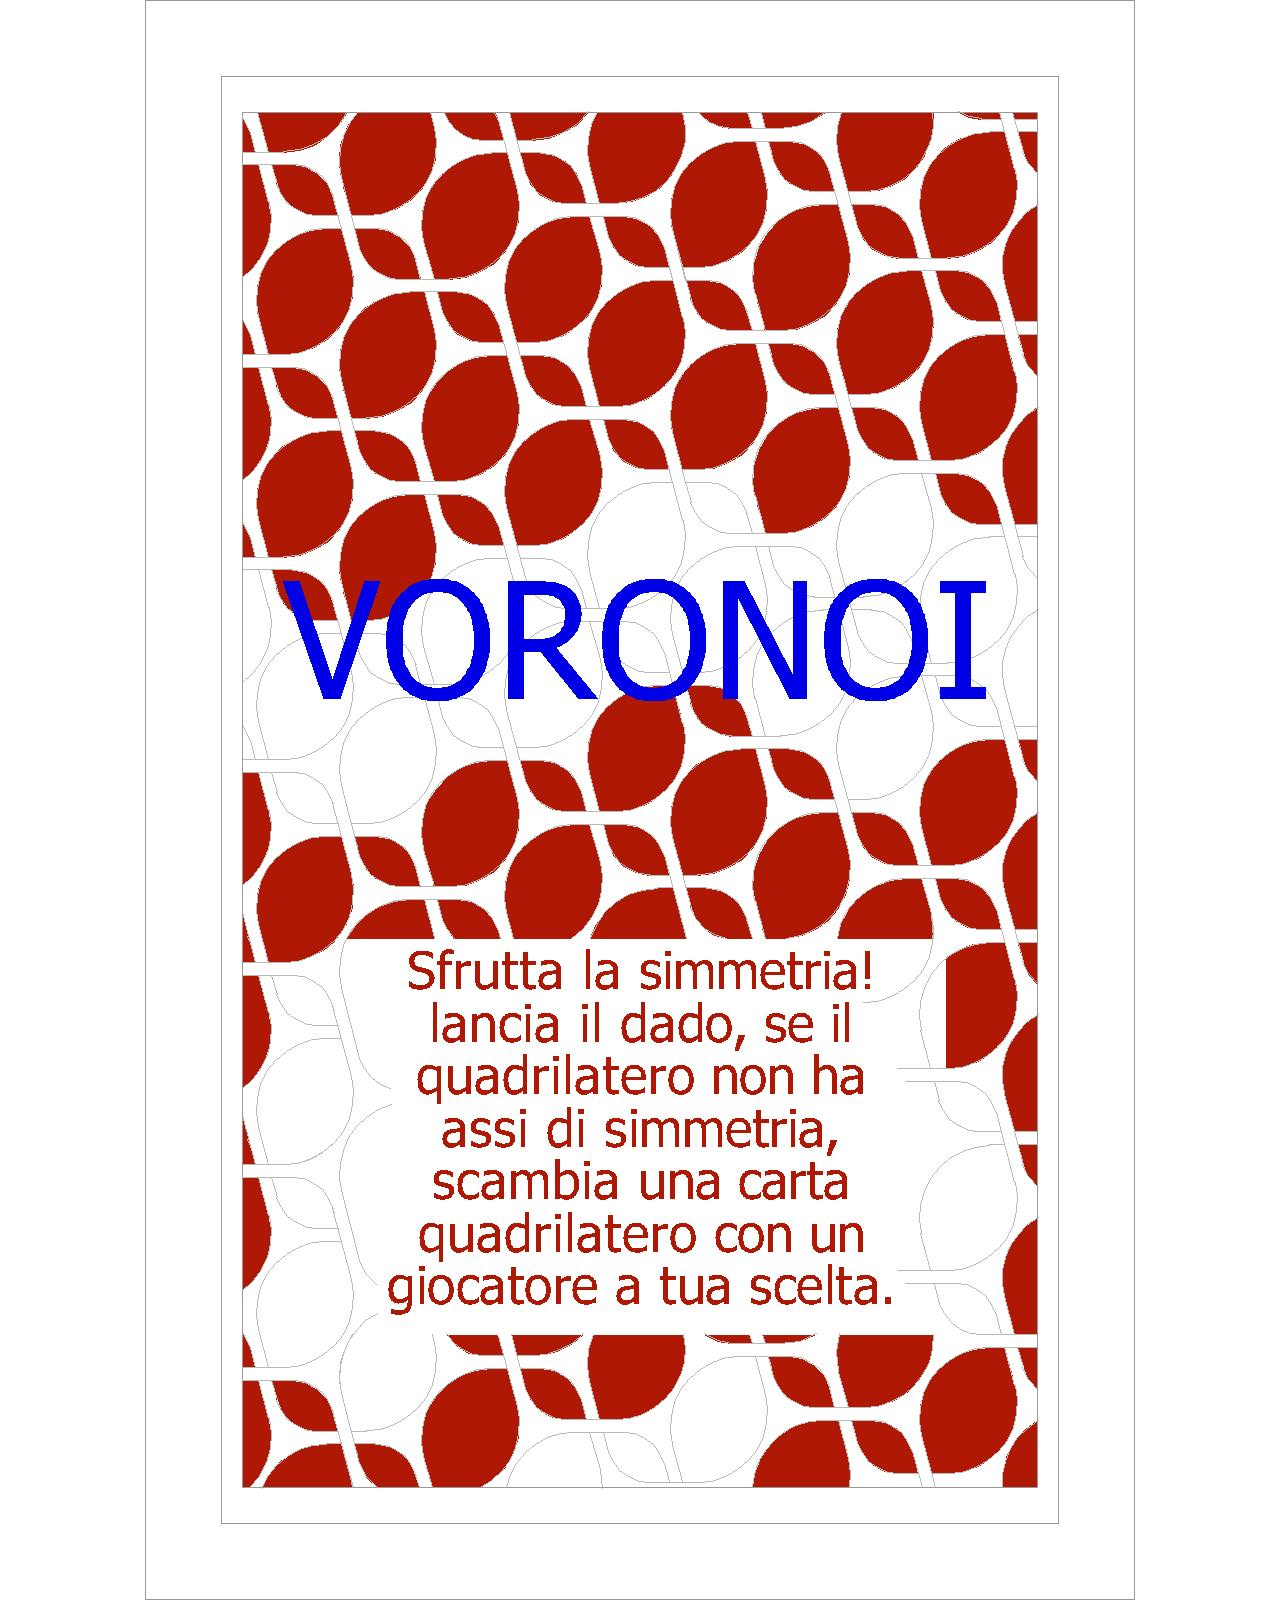 018. VORONOI b-Model (Coach M.C. Petroli)